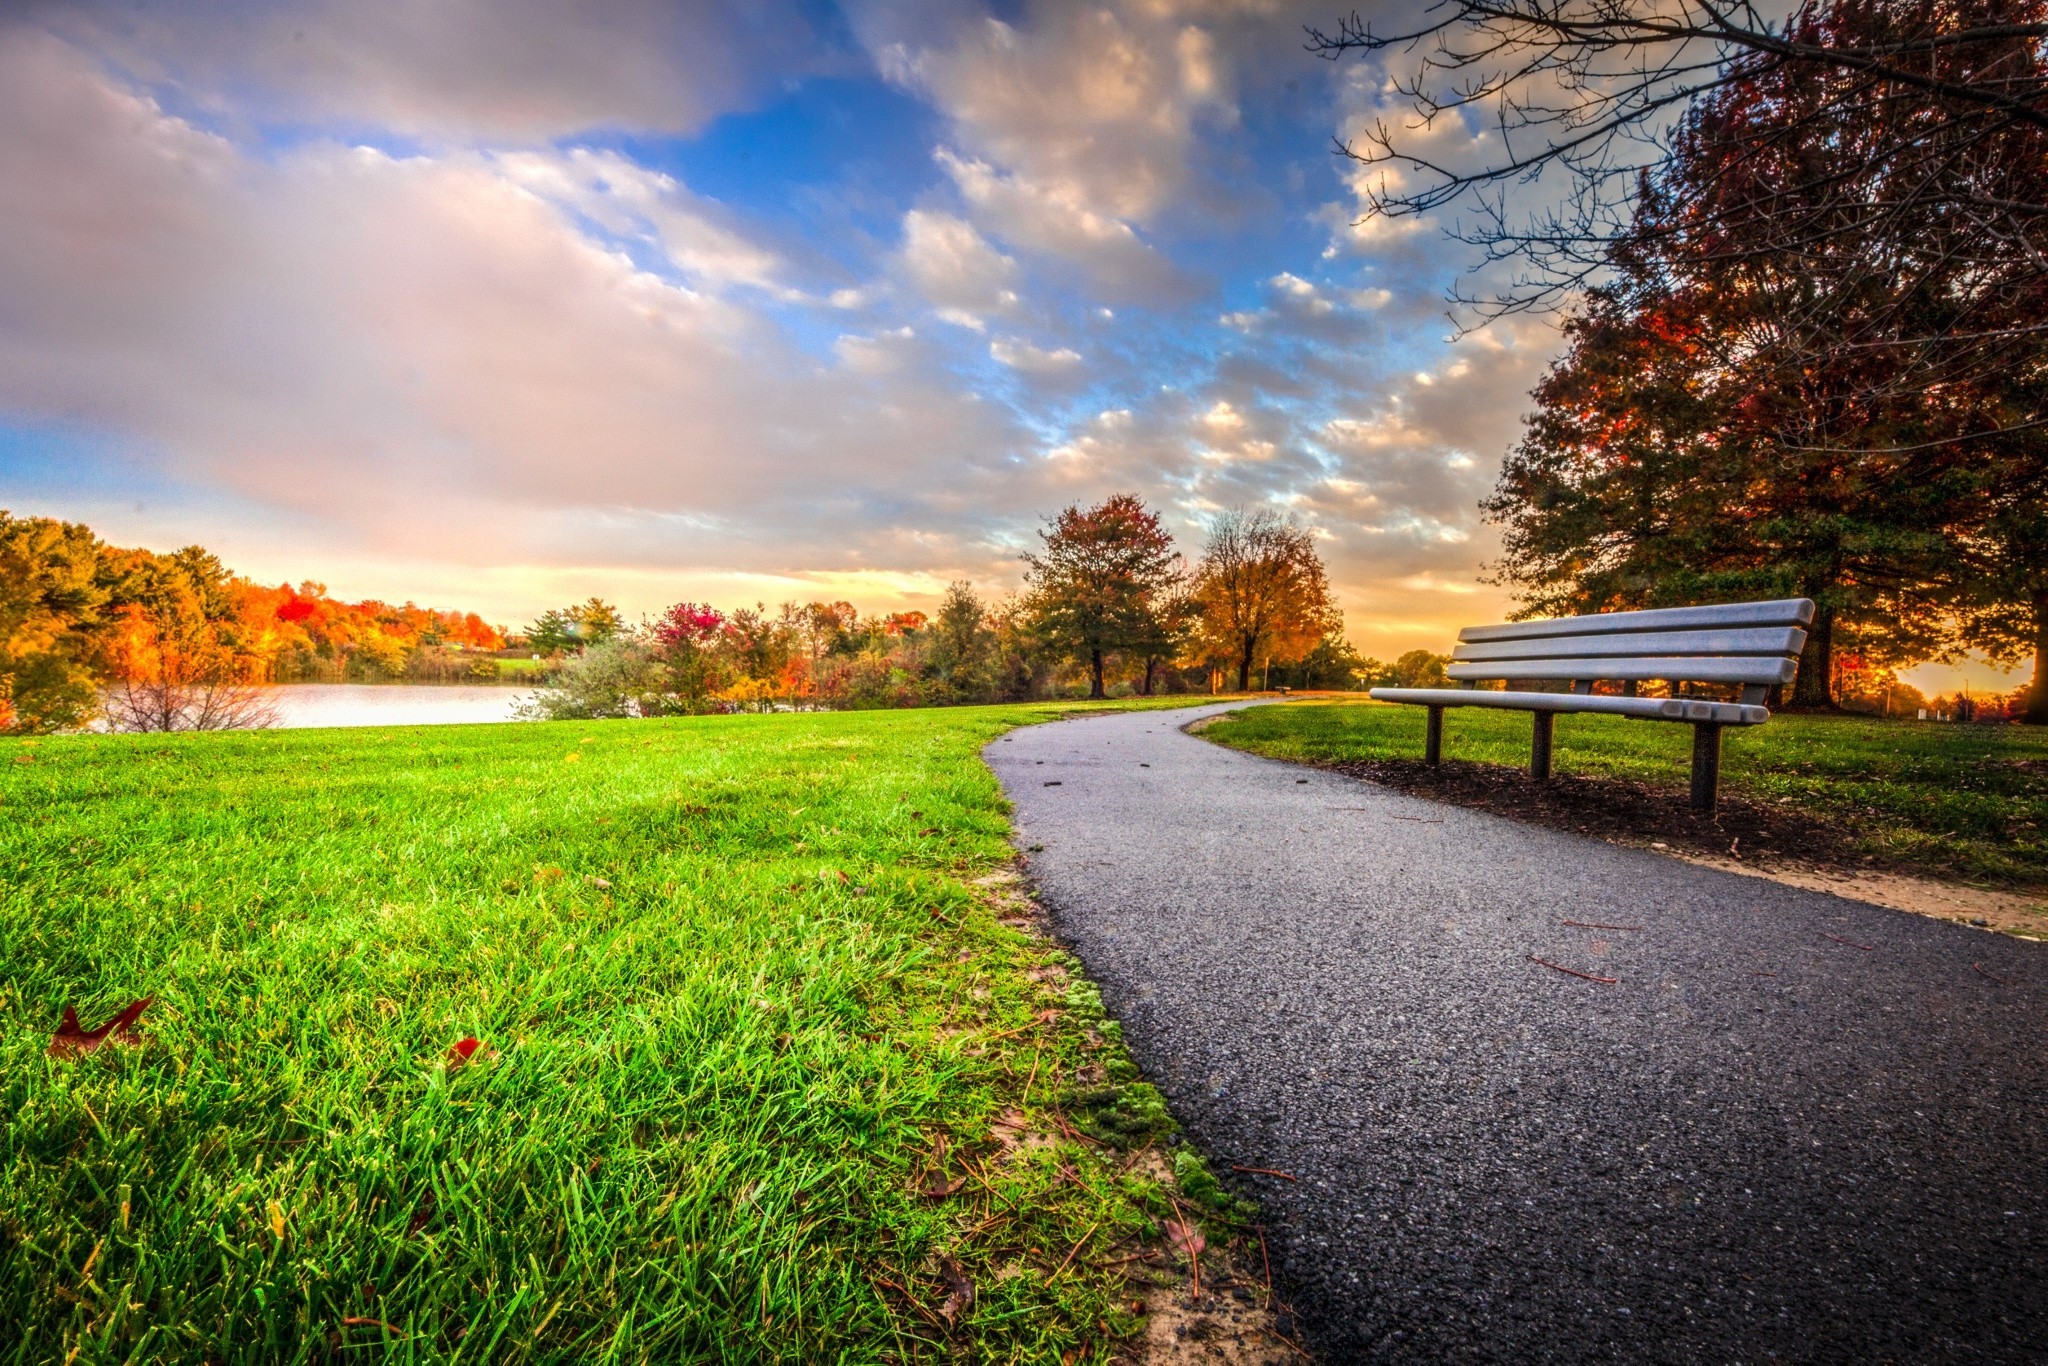 The Fall Movie Wallpaper Sunset Bench Park Trees Clouds Grass Fall Nature